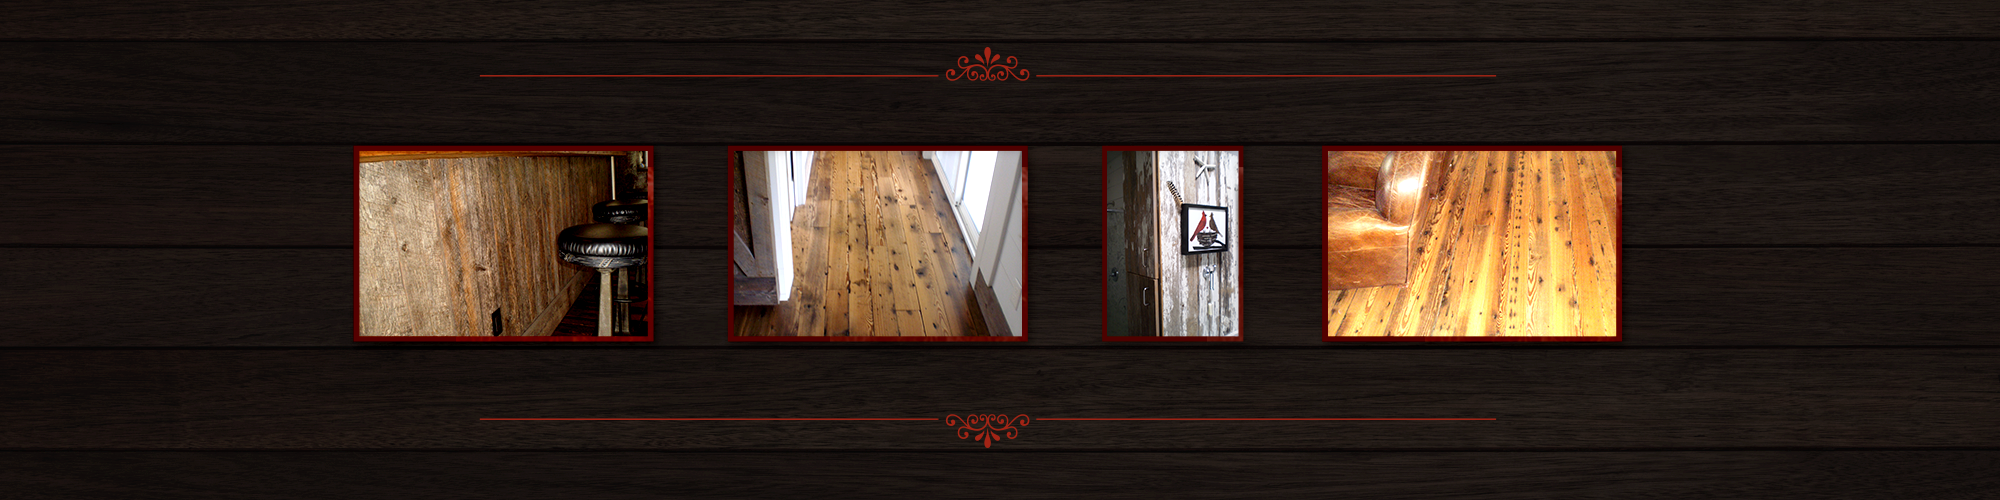 Antique Siding and Flooring